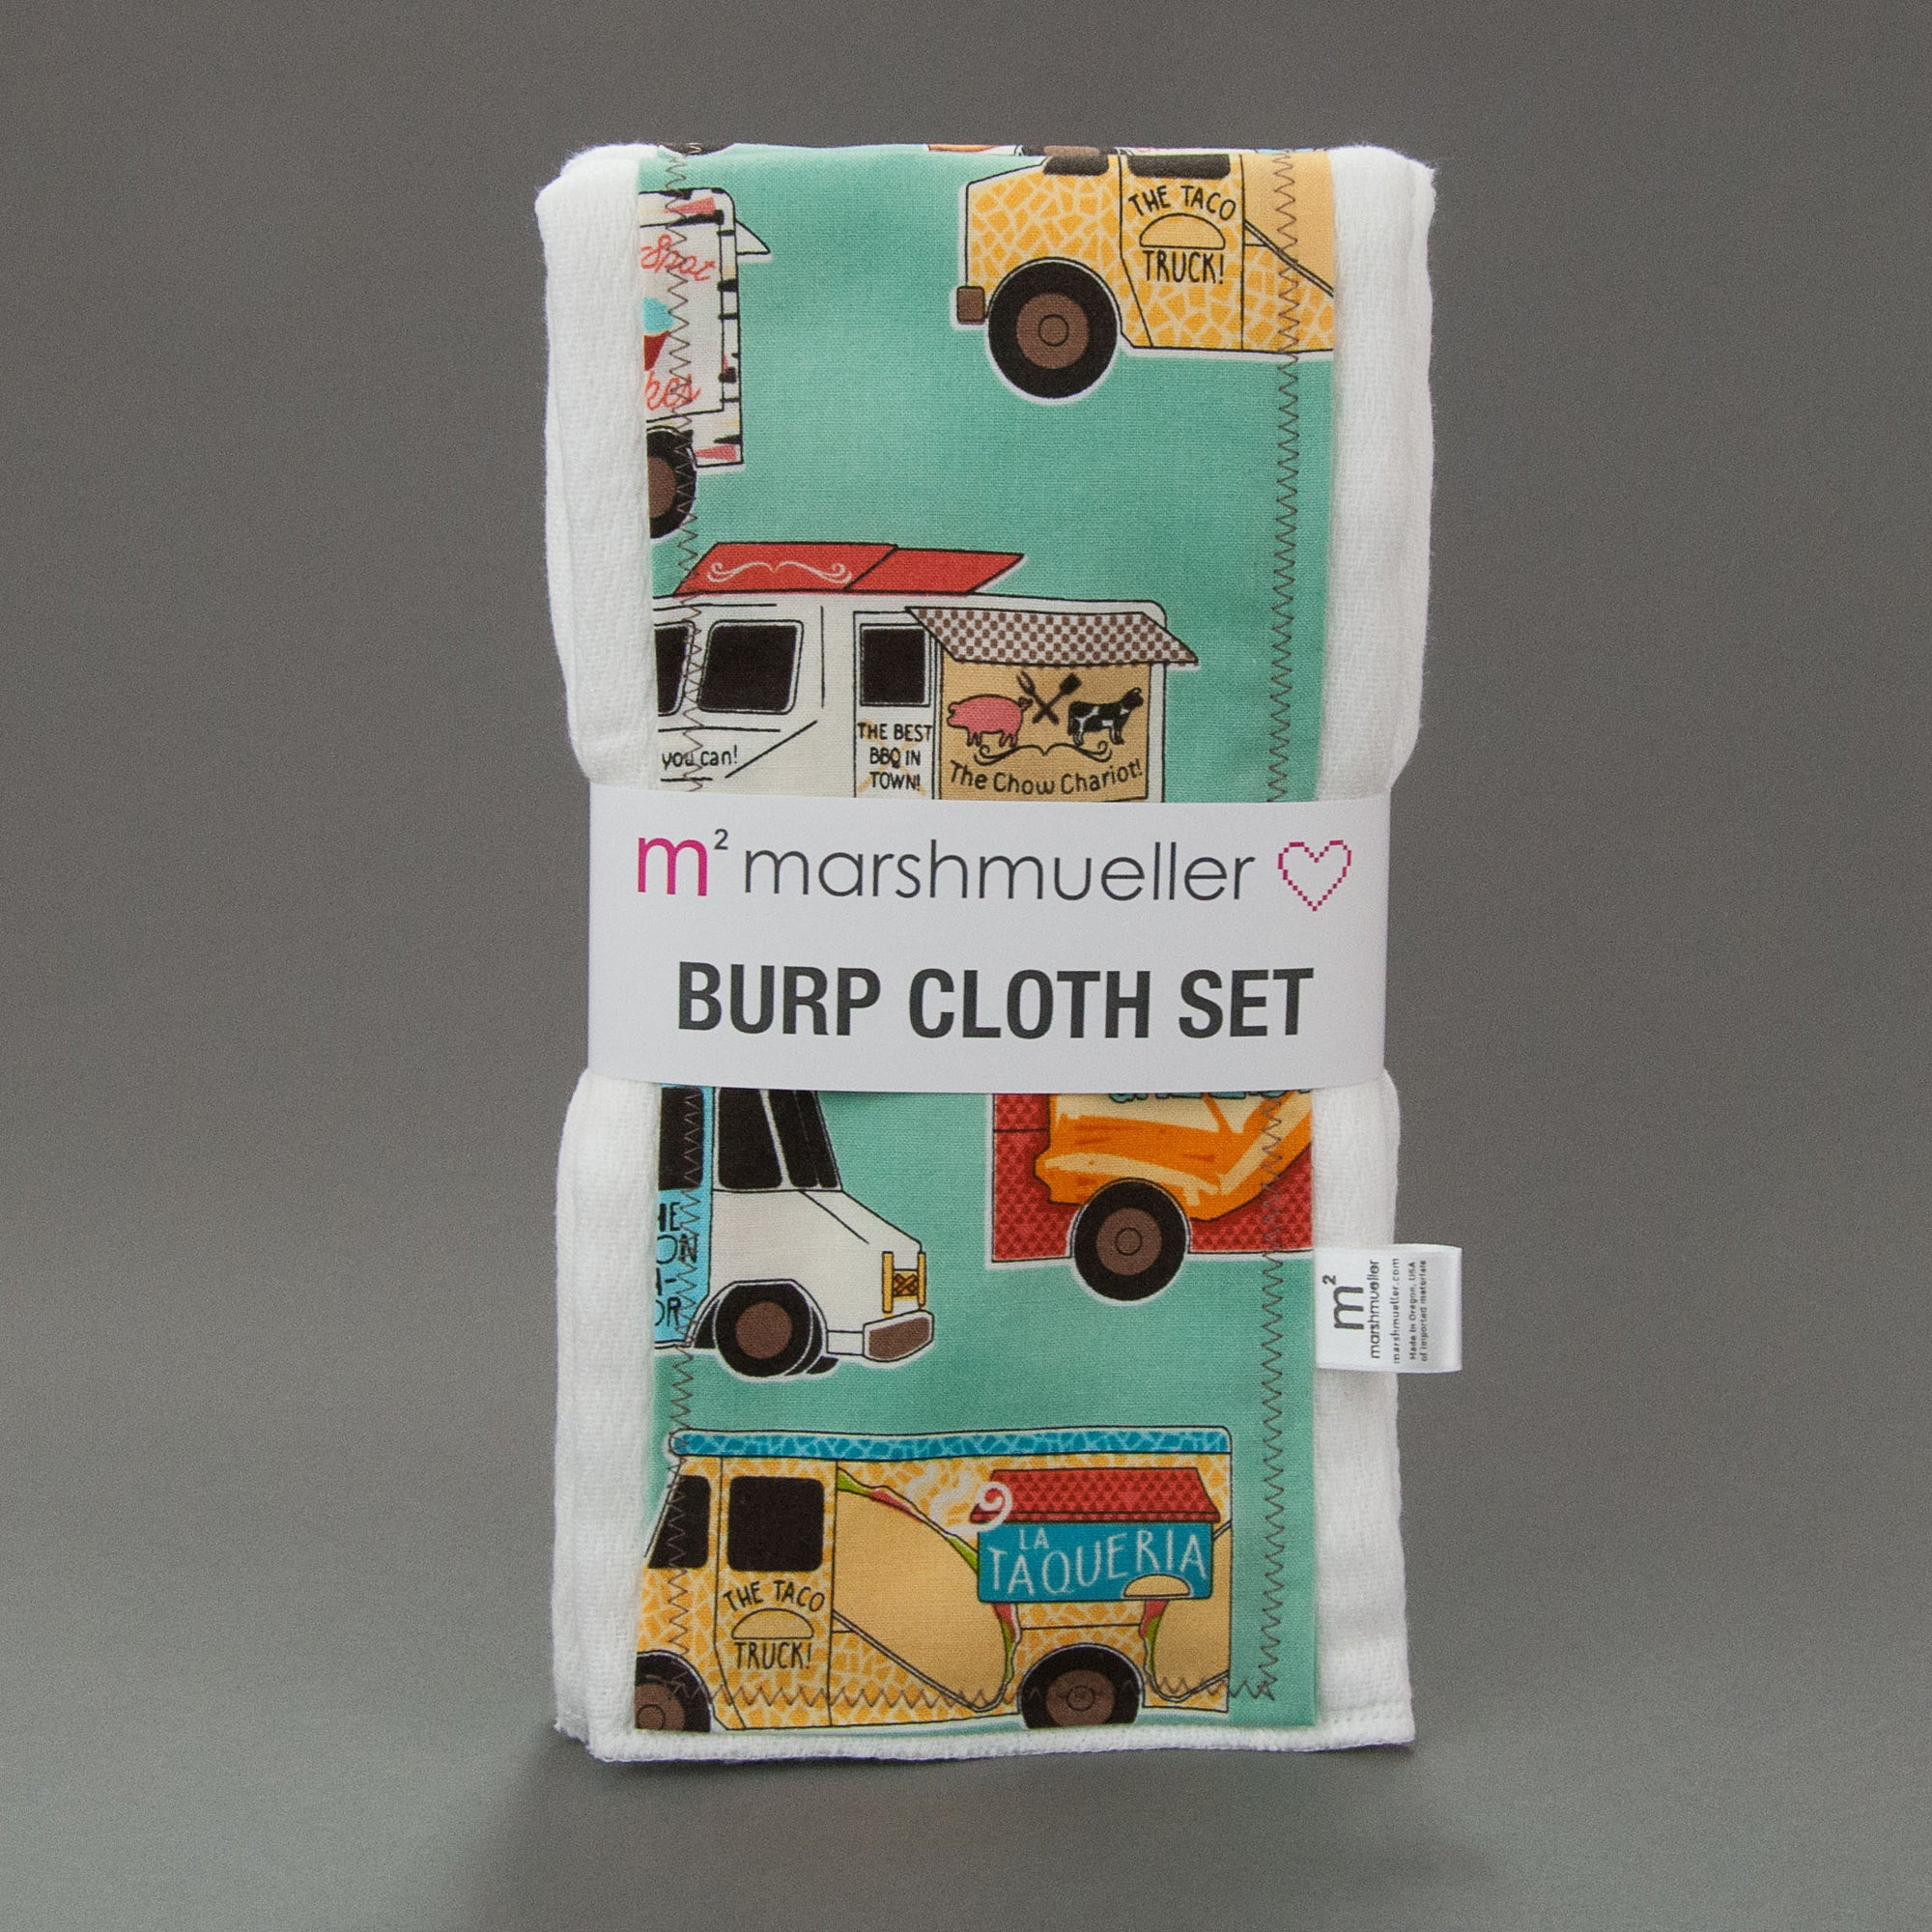 Food Trucks Burp Cloth Set, Burp Cloth Set, - MarshMueller